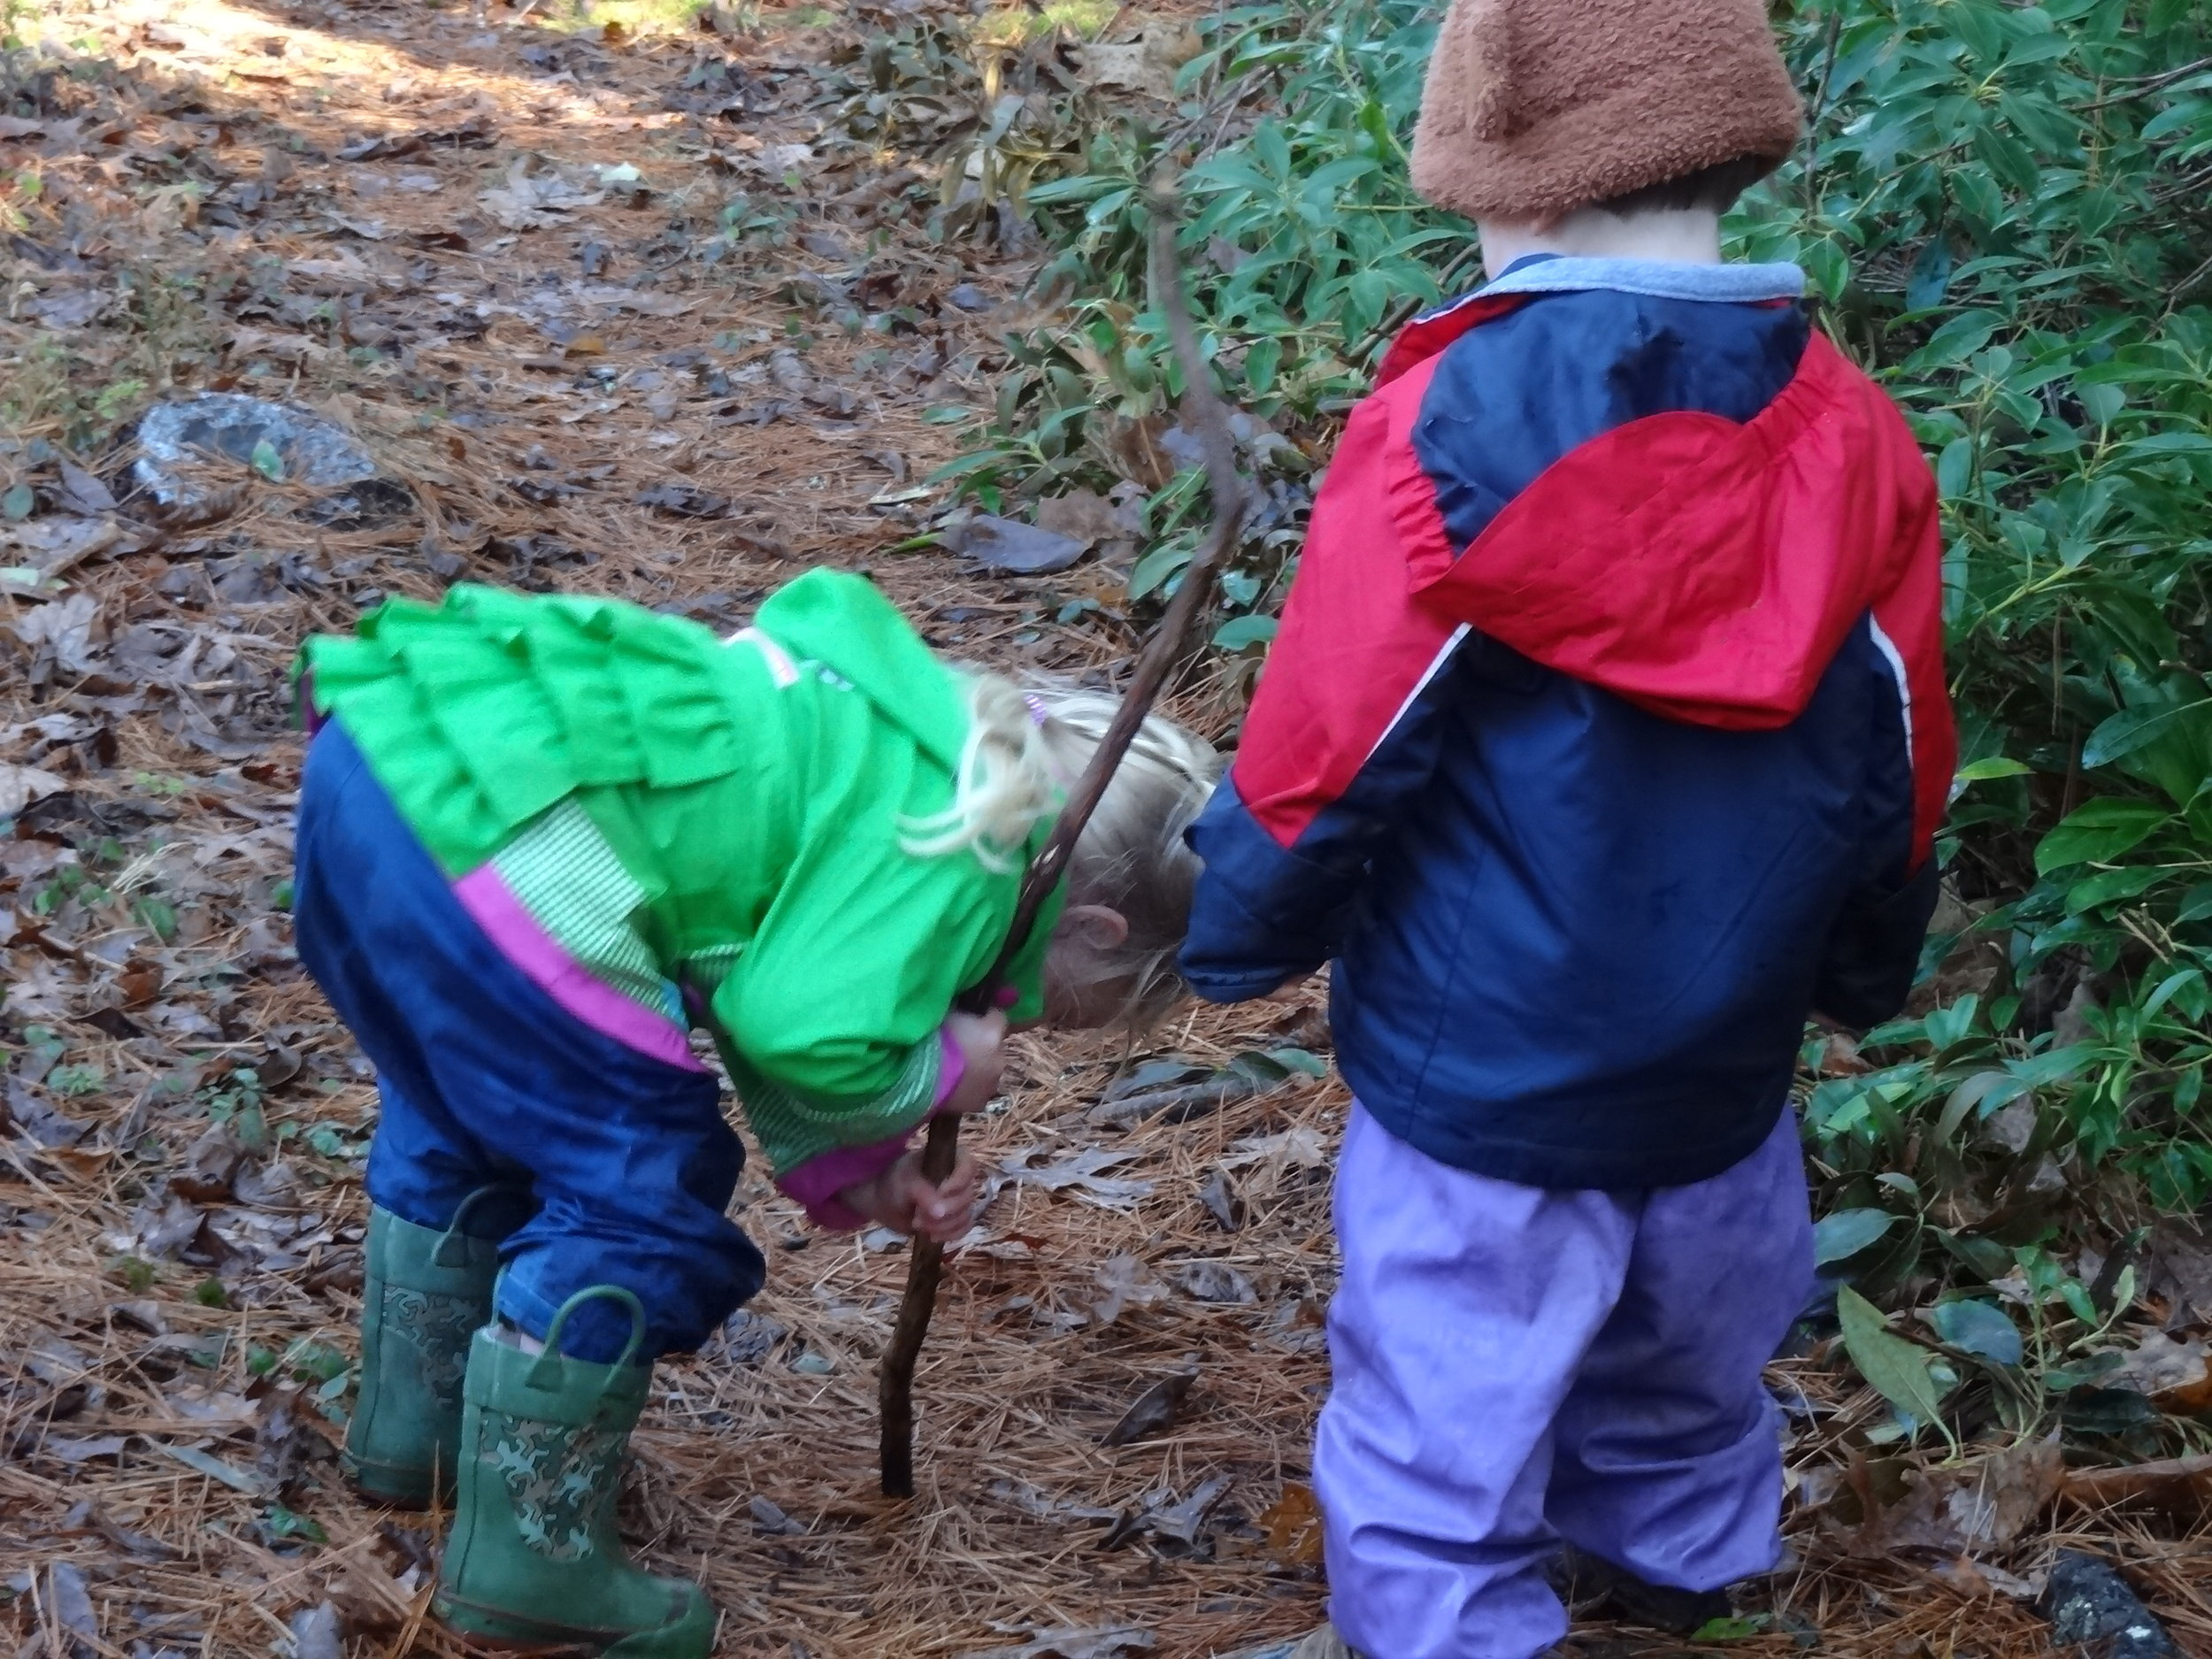 We allow children to play with sticks.  Sticks are used as an important tool for digging, reaching, pointing, hitting (not each other), hanging, and much more.